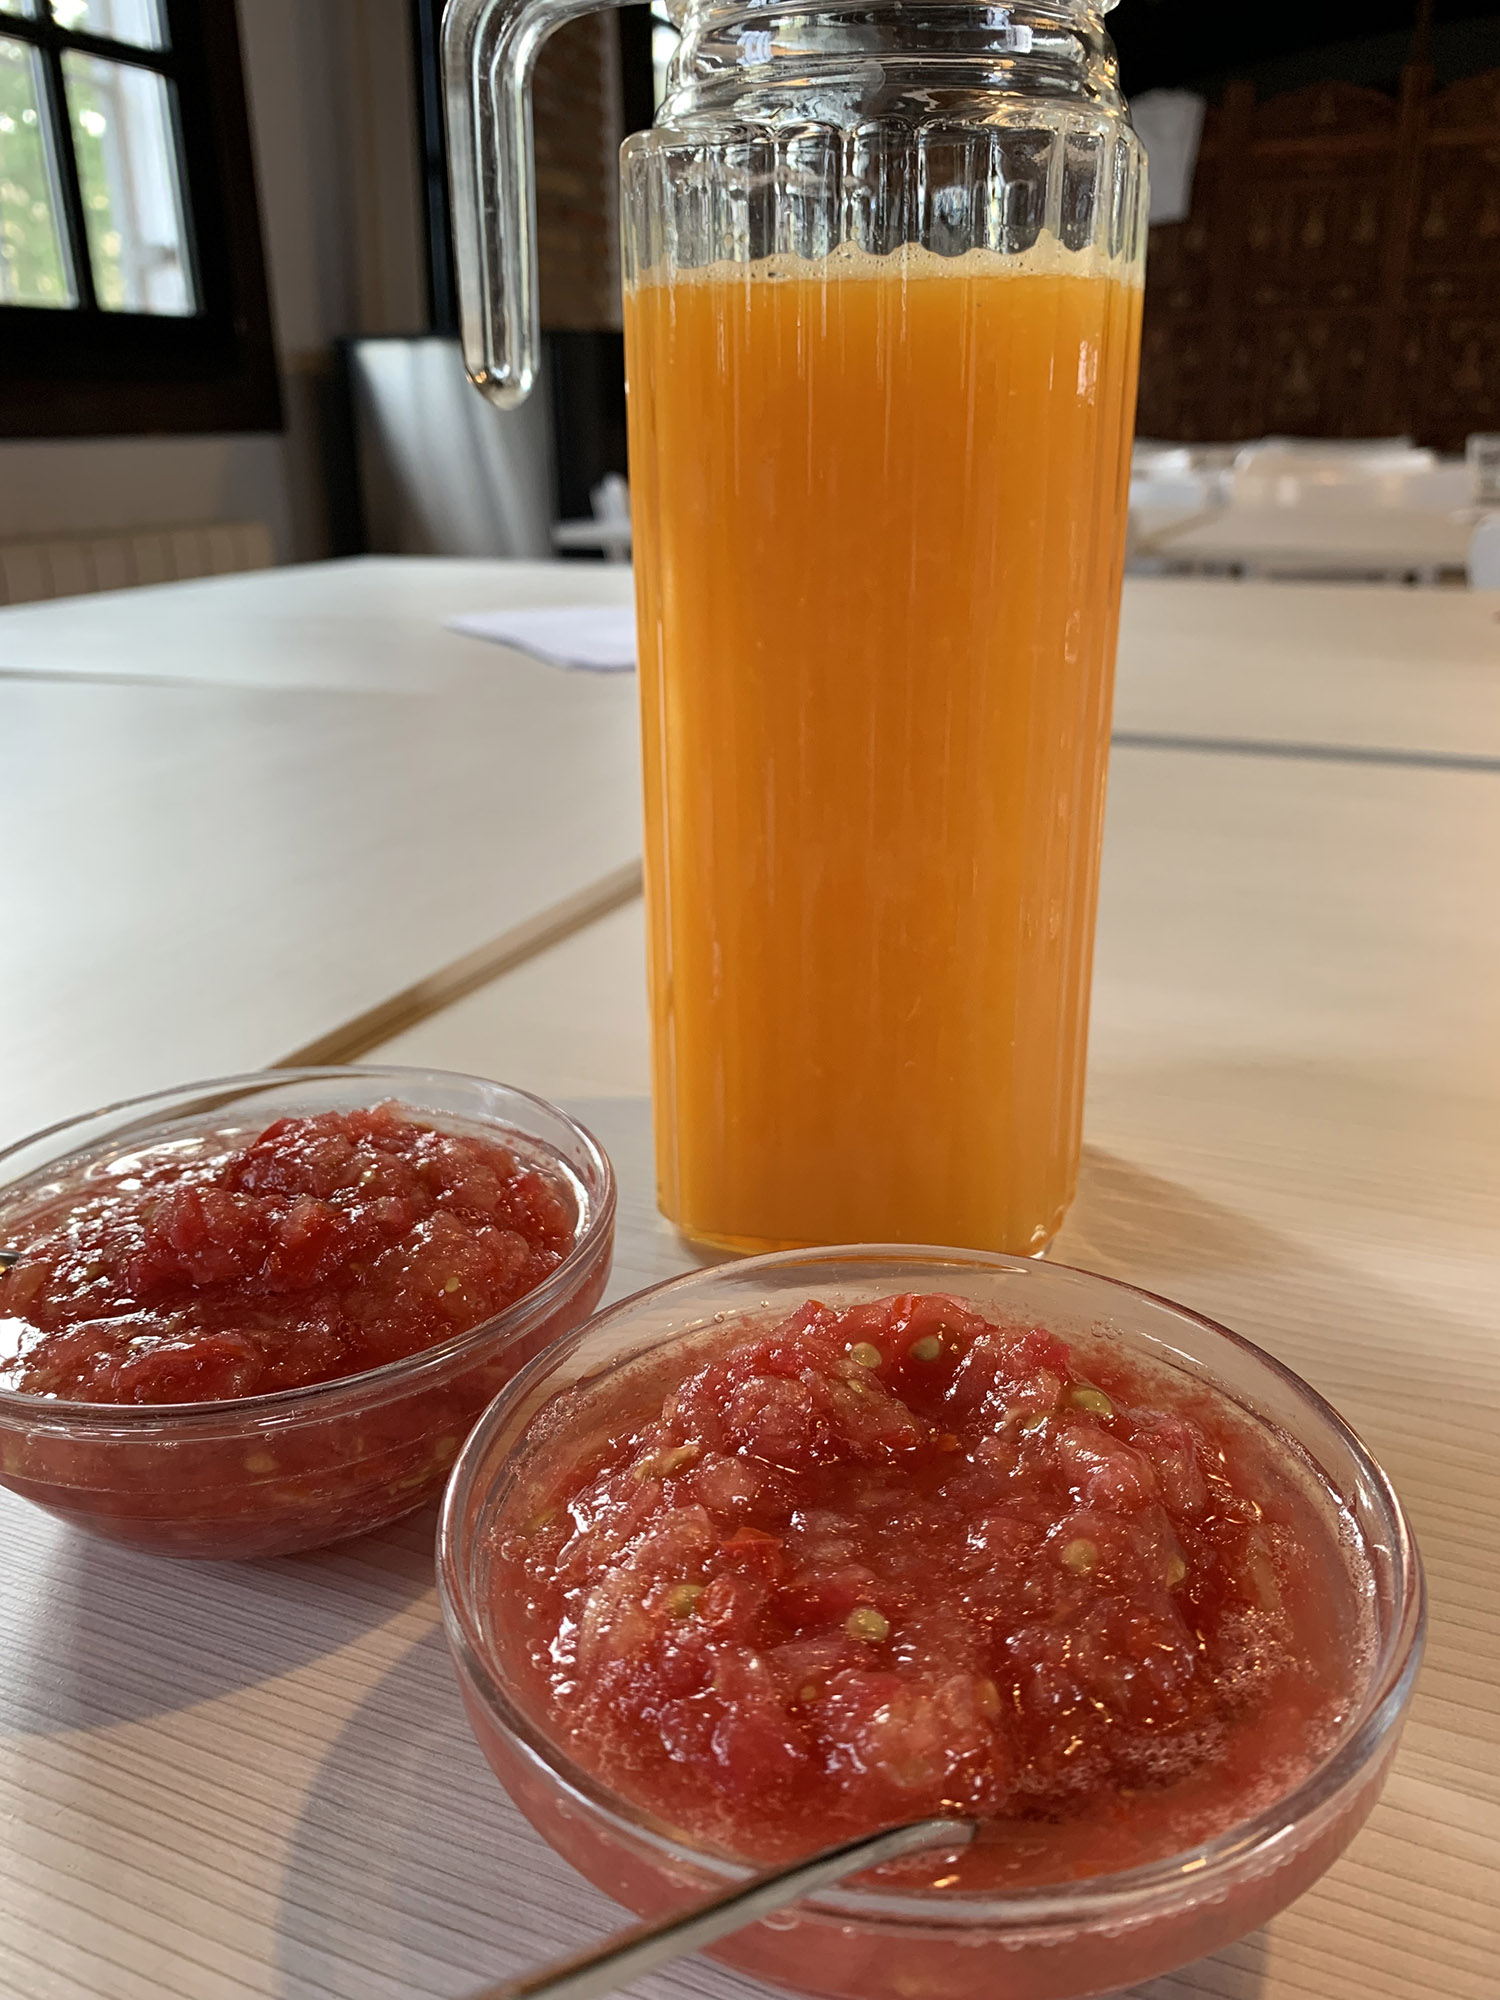 Freshly squeezed orange and grated tomato for breakfast